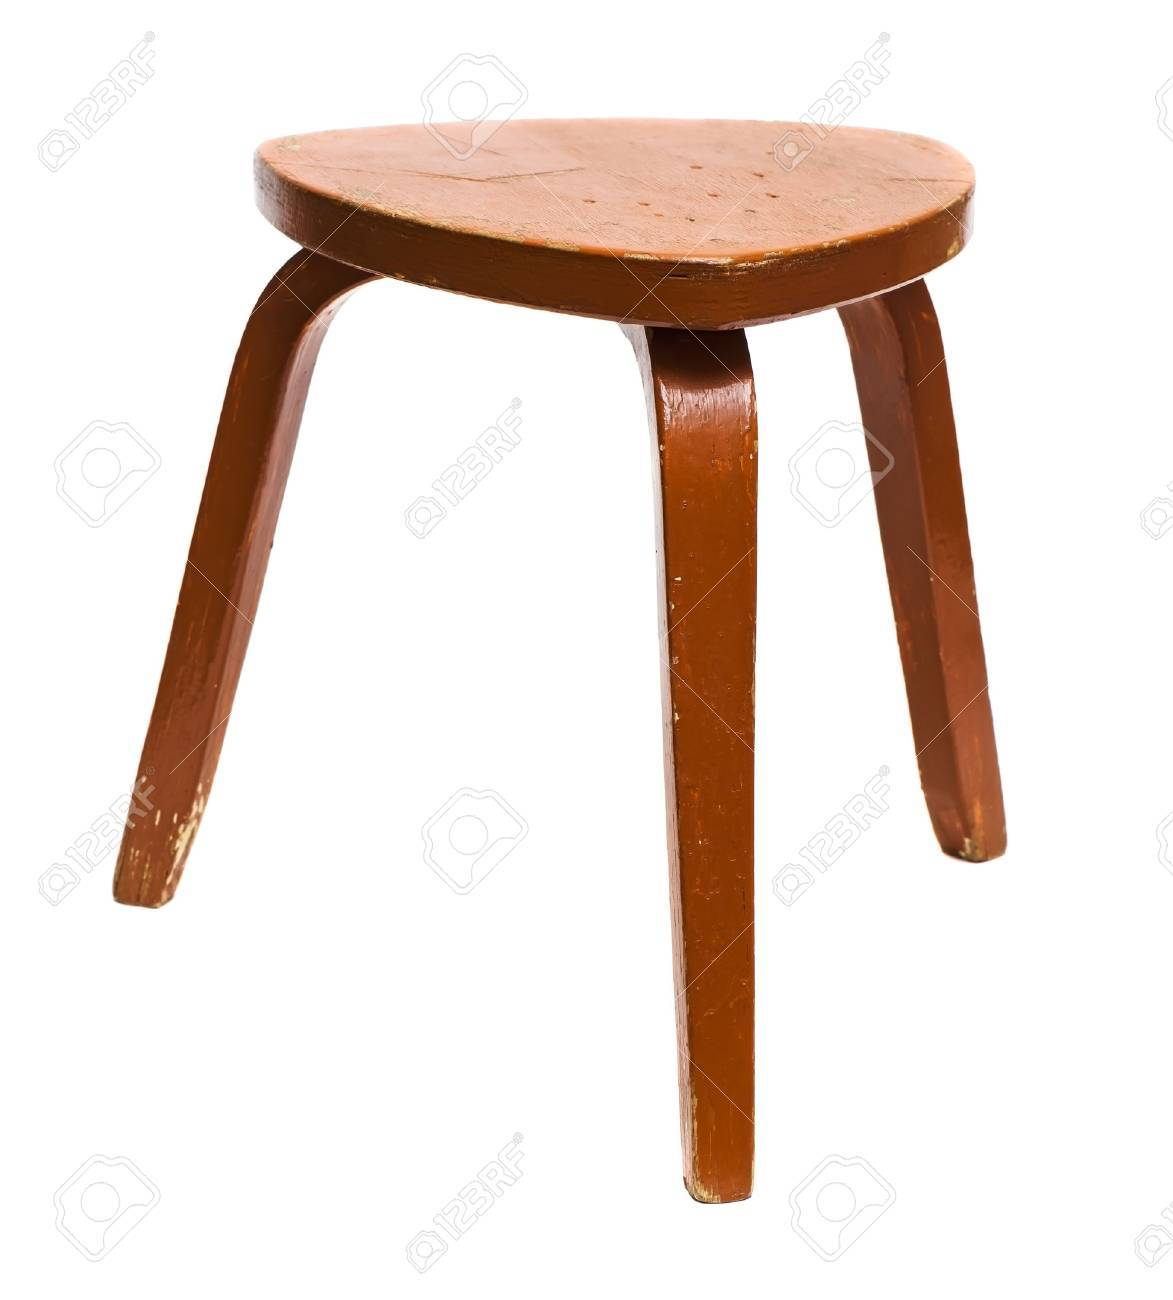 Old wooden stool isolated on white background Stock Photo - 23449725  sc 1 st  123RF Stock Photos & Old Wooden Stool Isolated On White Background Stock Photo Picture ... islam-shia.org